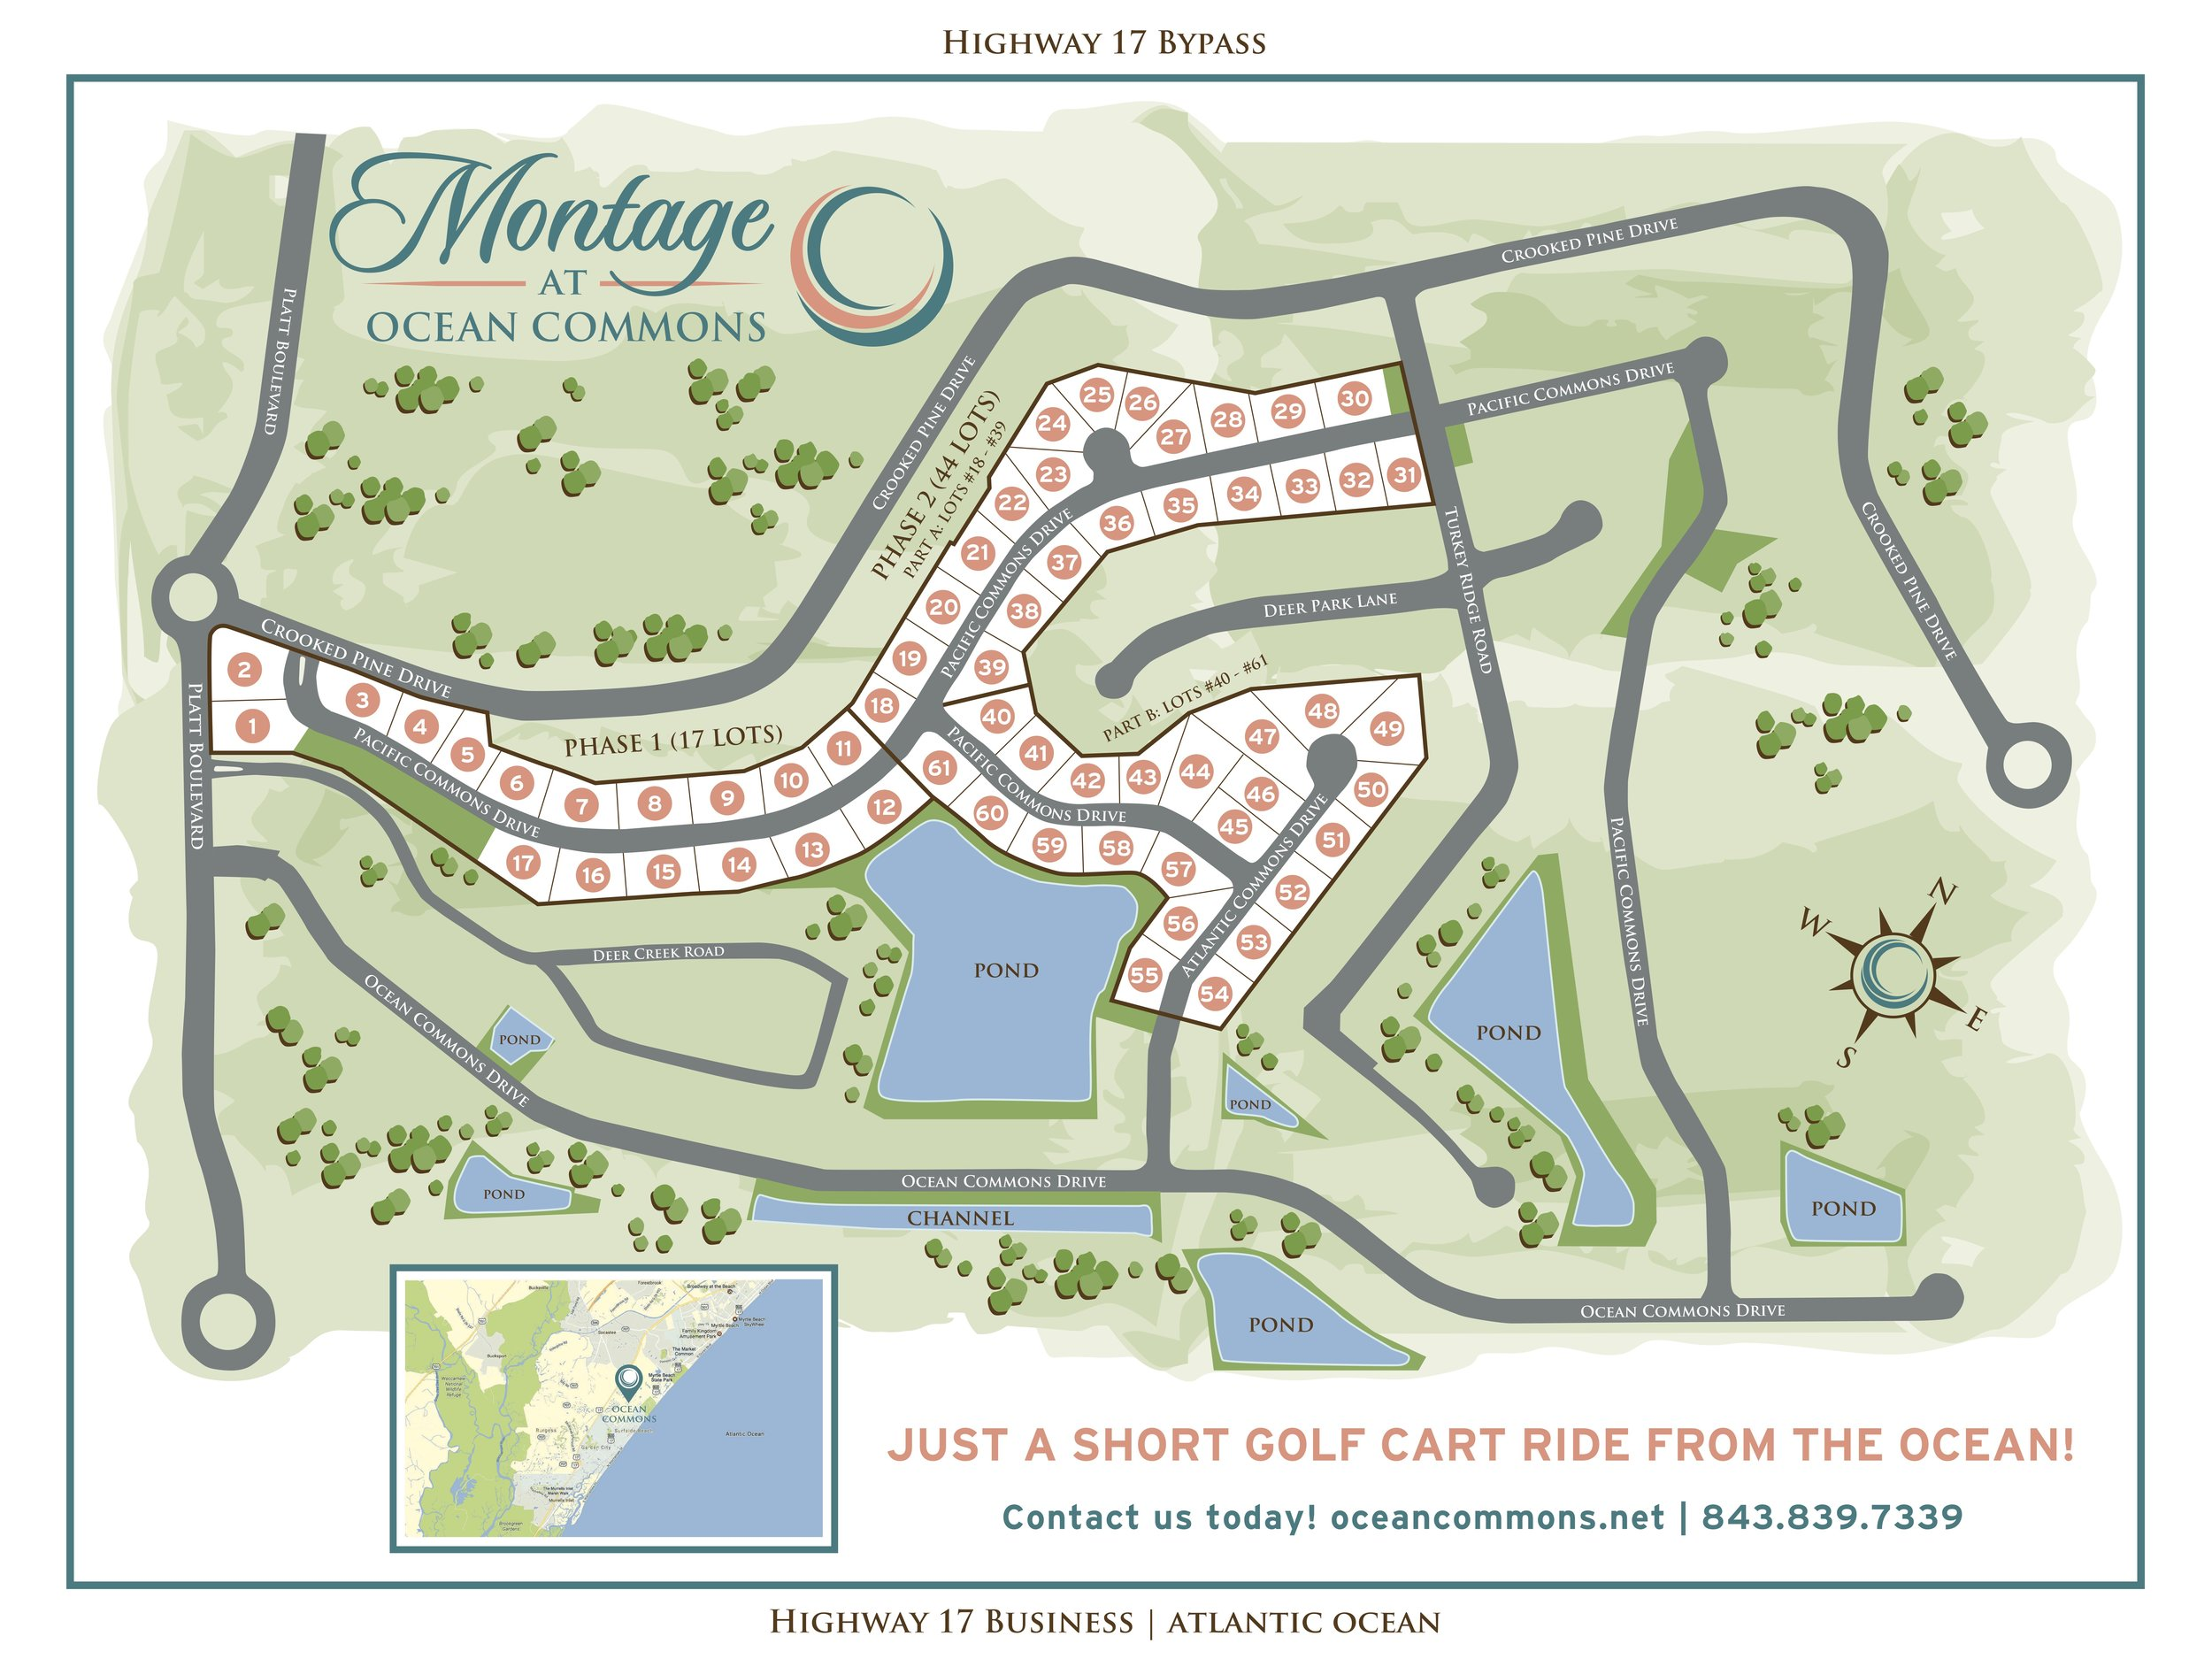 """We have hand selected the first region of lots for exclusive offer to our first home buyers dubbed """"The Montage"""". We would like you to be the first to experience the design, craftsmanship, and affordability of these premium home sites!"""